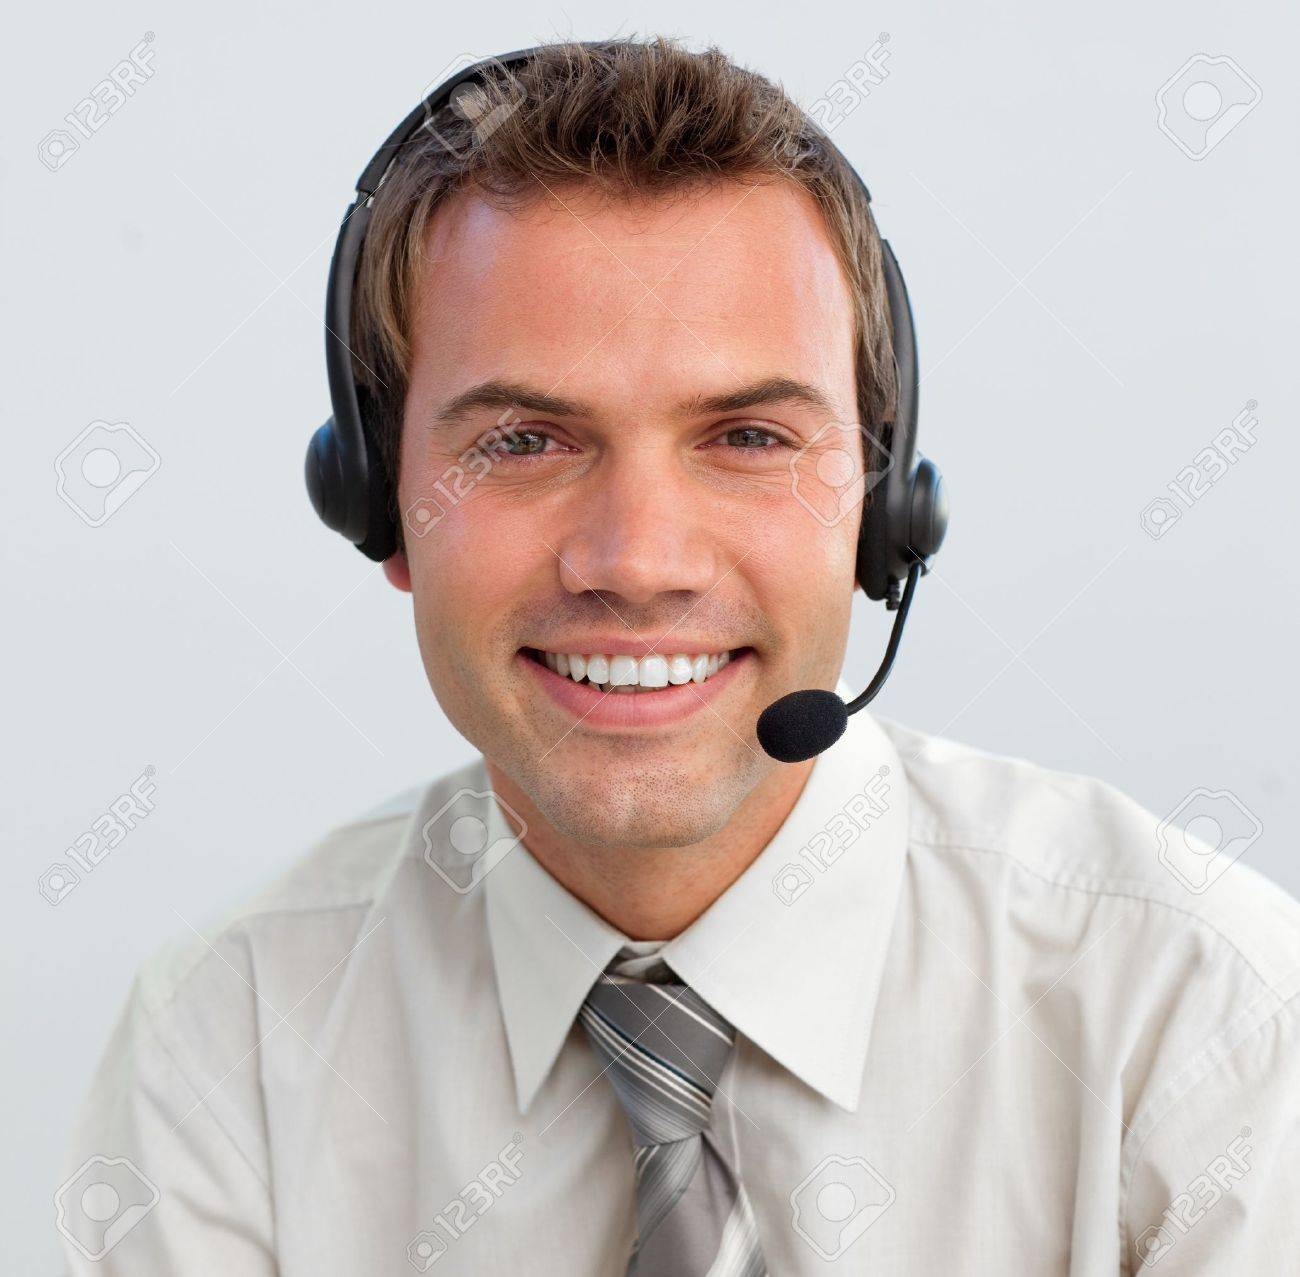 Portrait of a smiling businessman with a headset on Stock Photo - 10078311